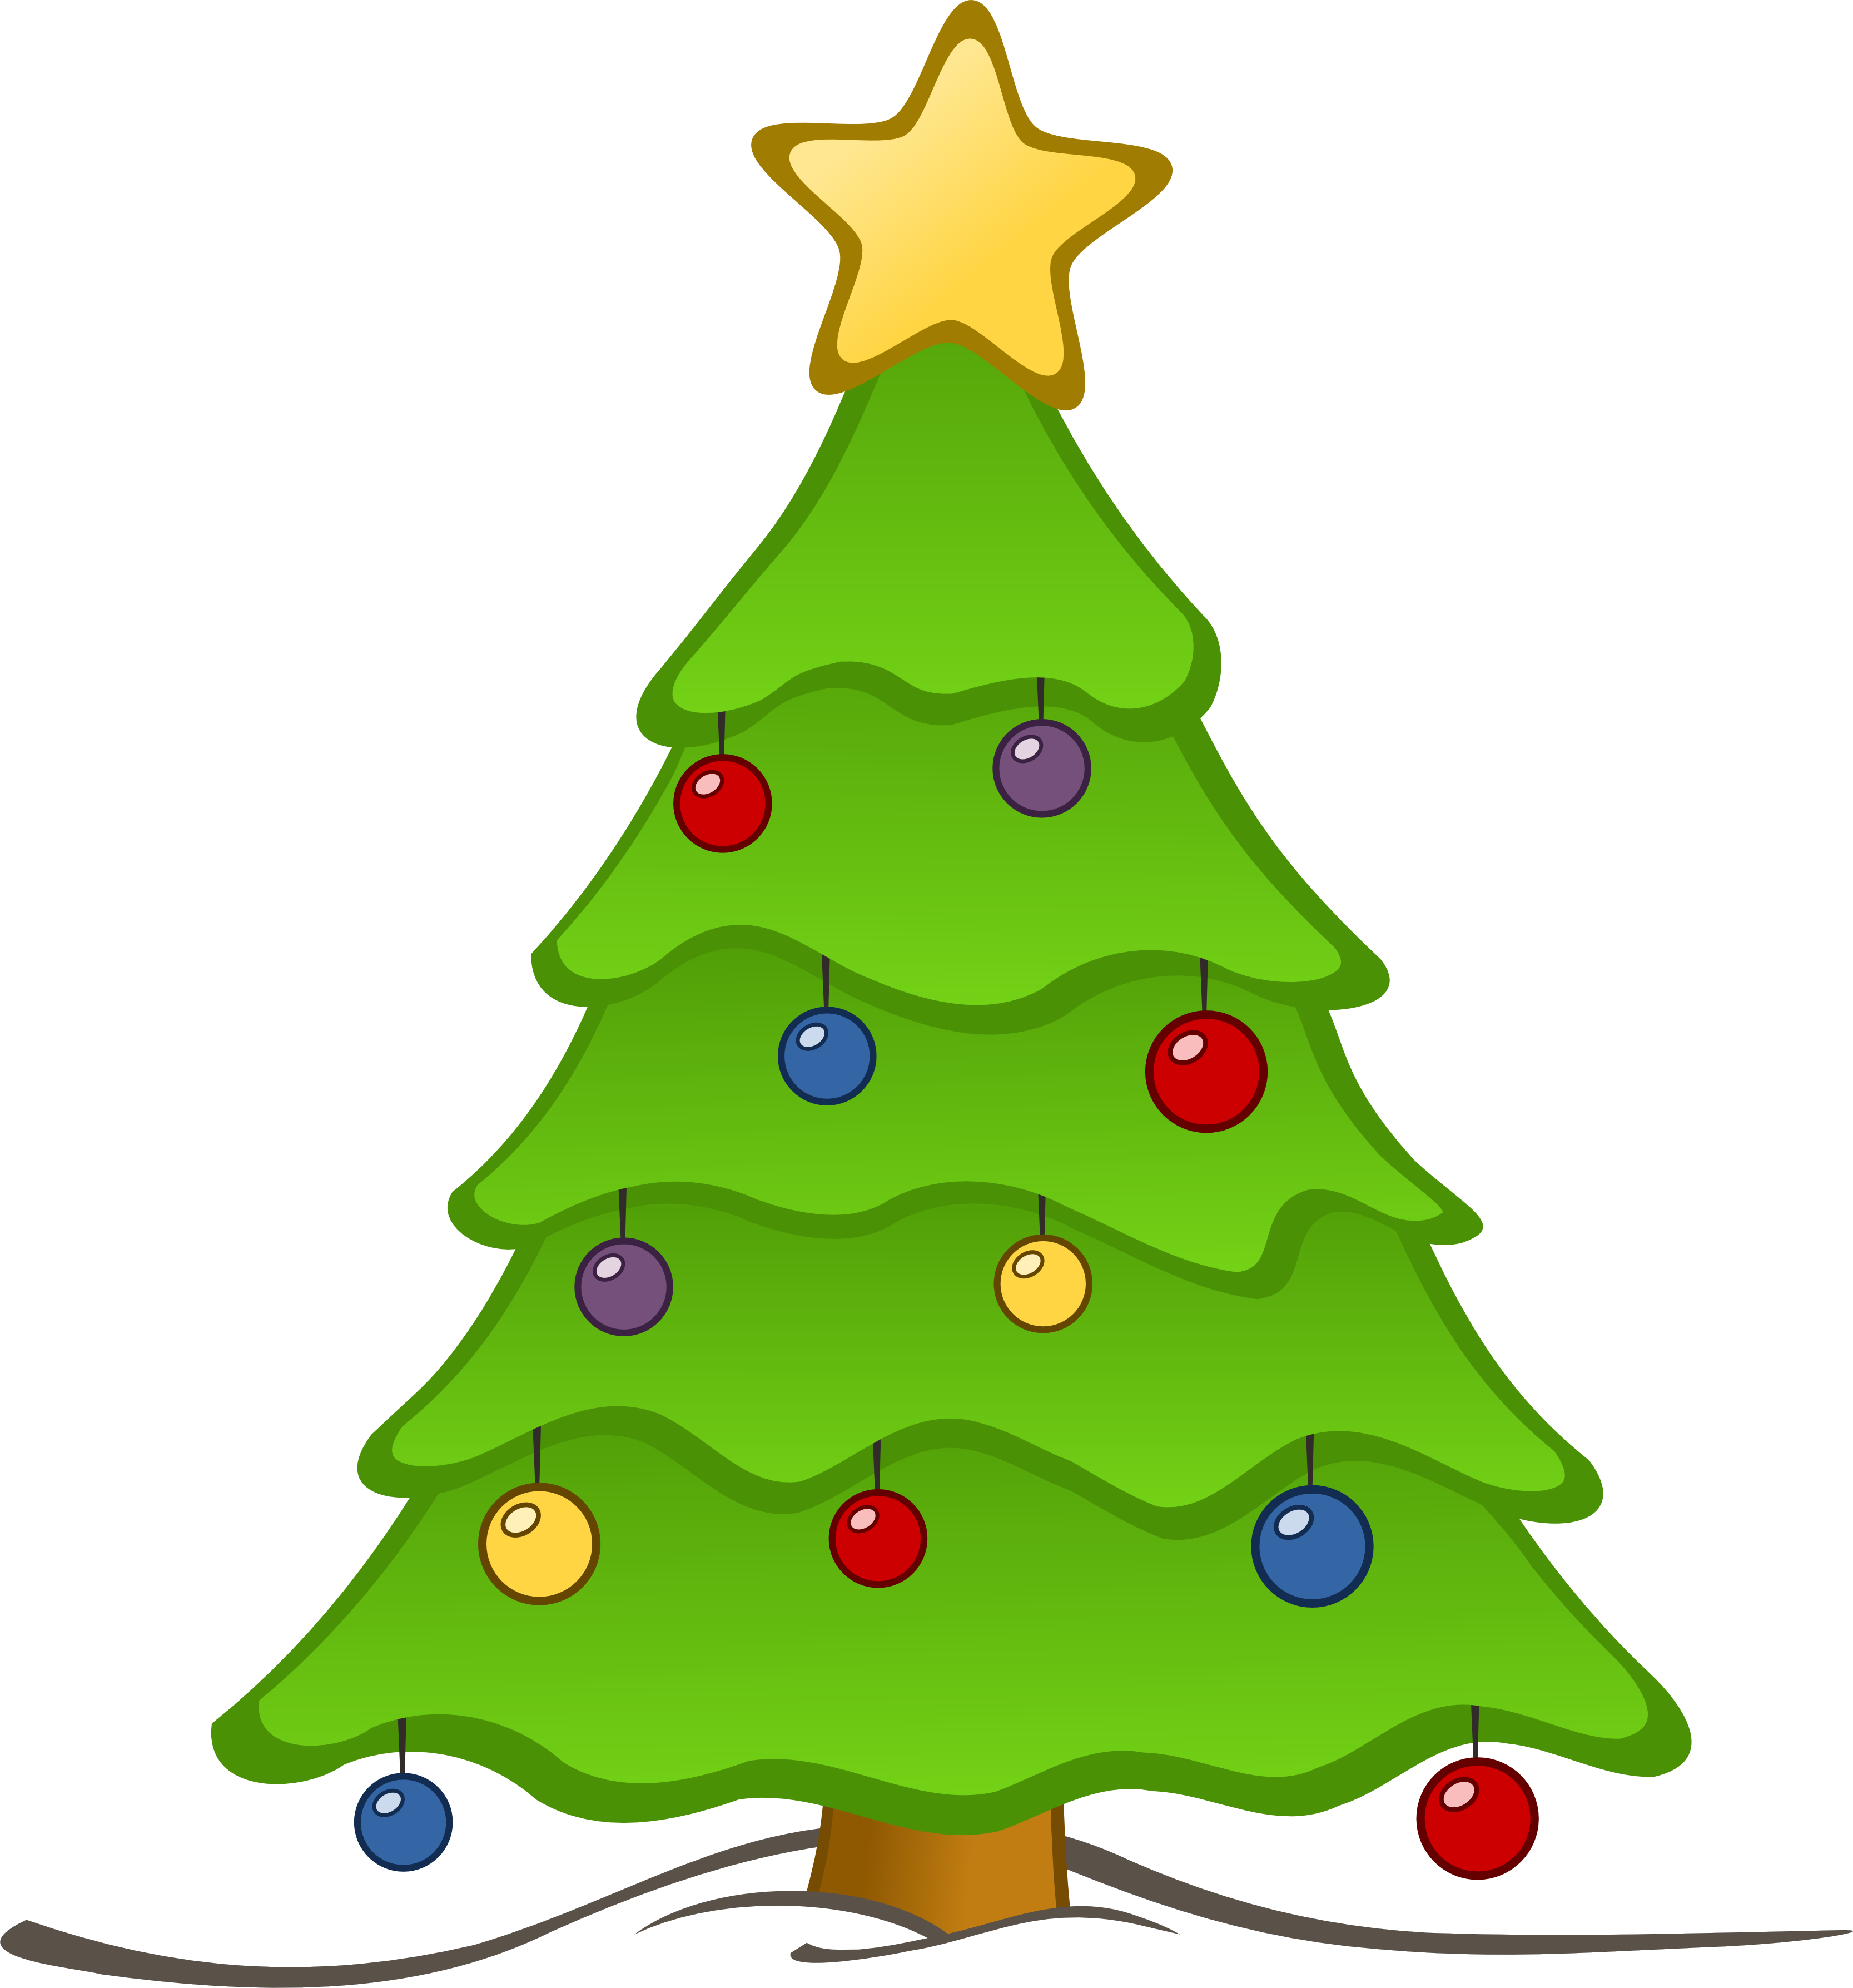 Free christmas tree images clipart jpg transparent Christmas Tree Clipart - ClipartBarn jpg transparent